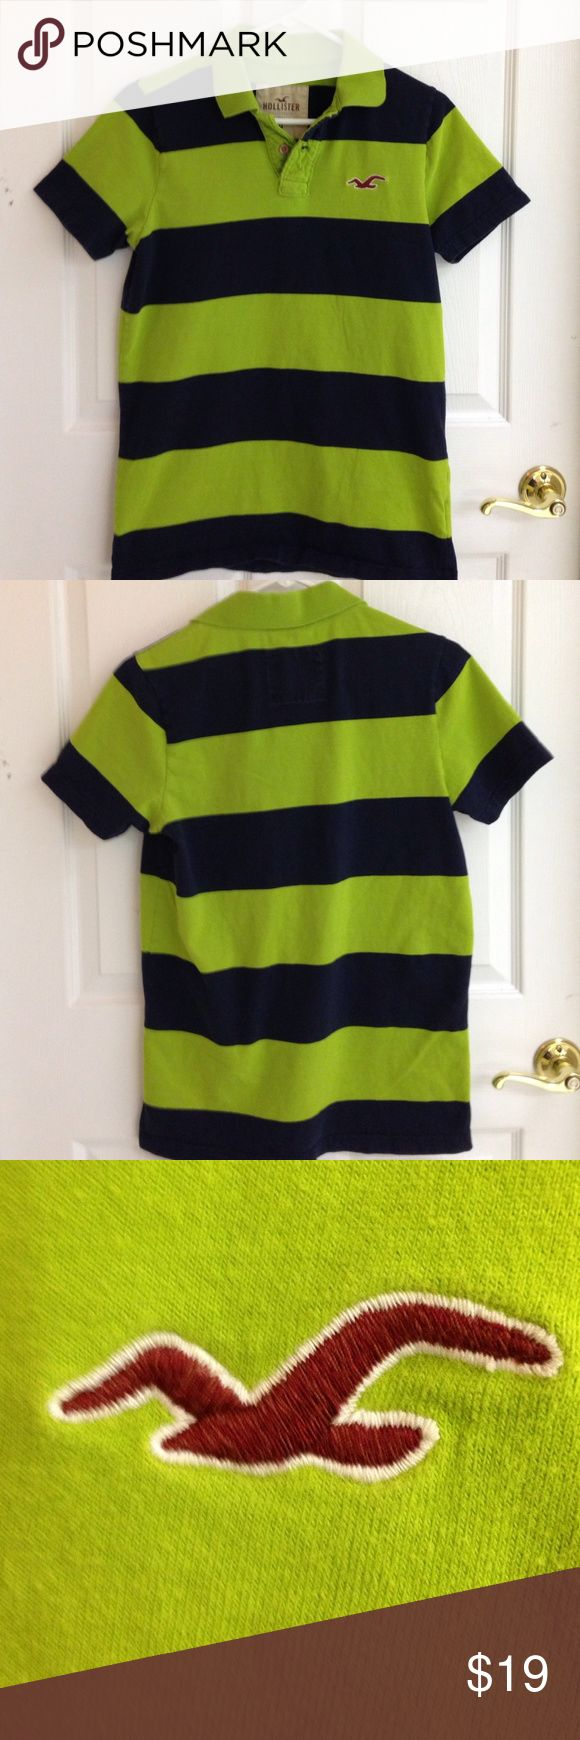 Hollister Polo Shirt Hollister navy blue and green polo shirt. Short sleeves. 100% cotton. In excellent pre used condition. Size M Hollister Shirts Polos